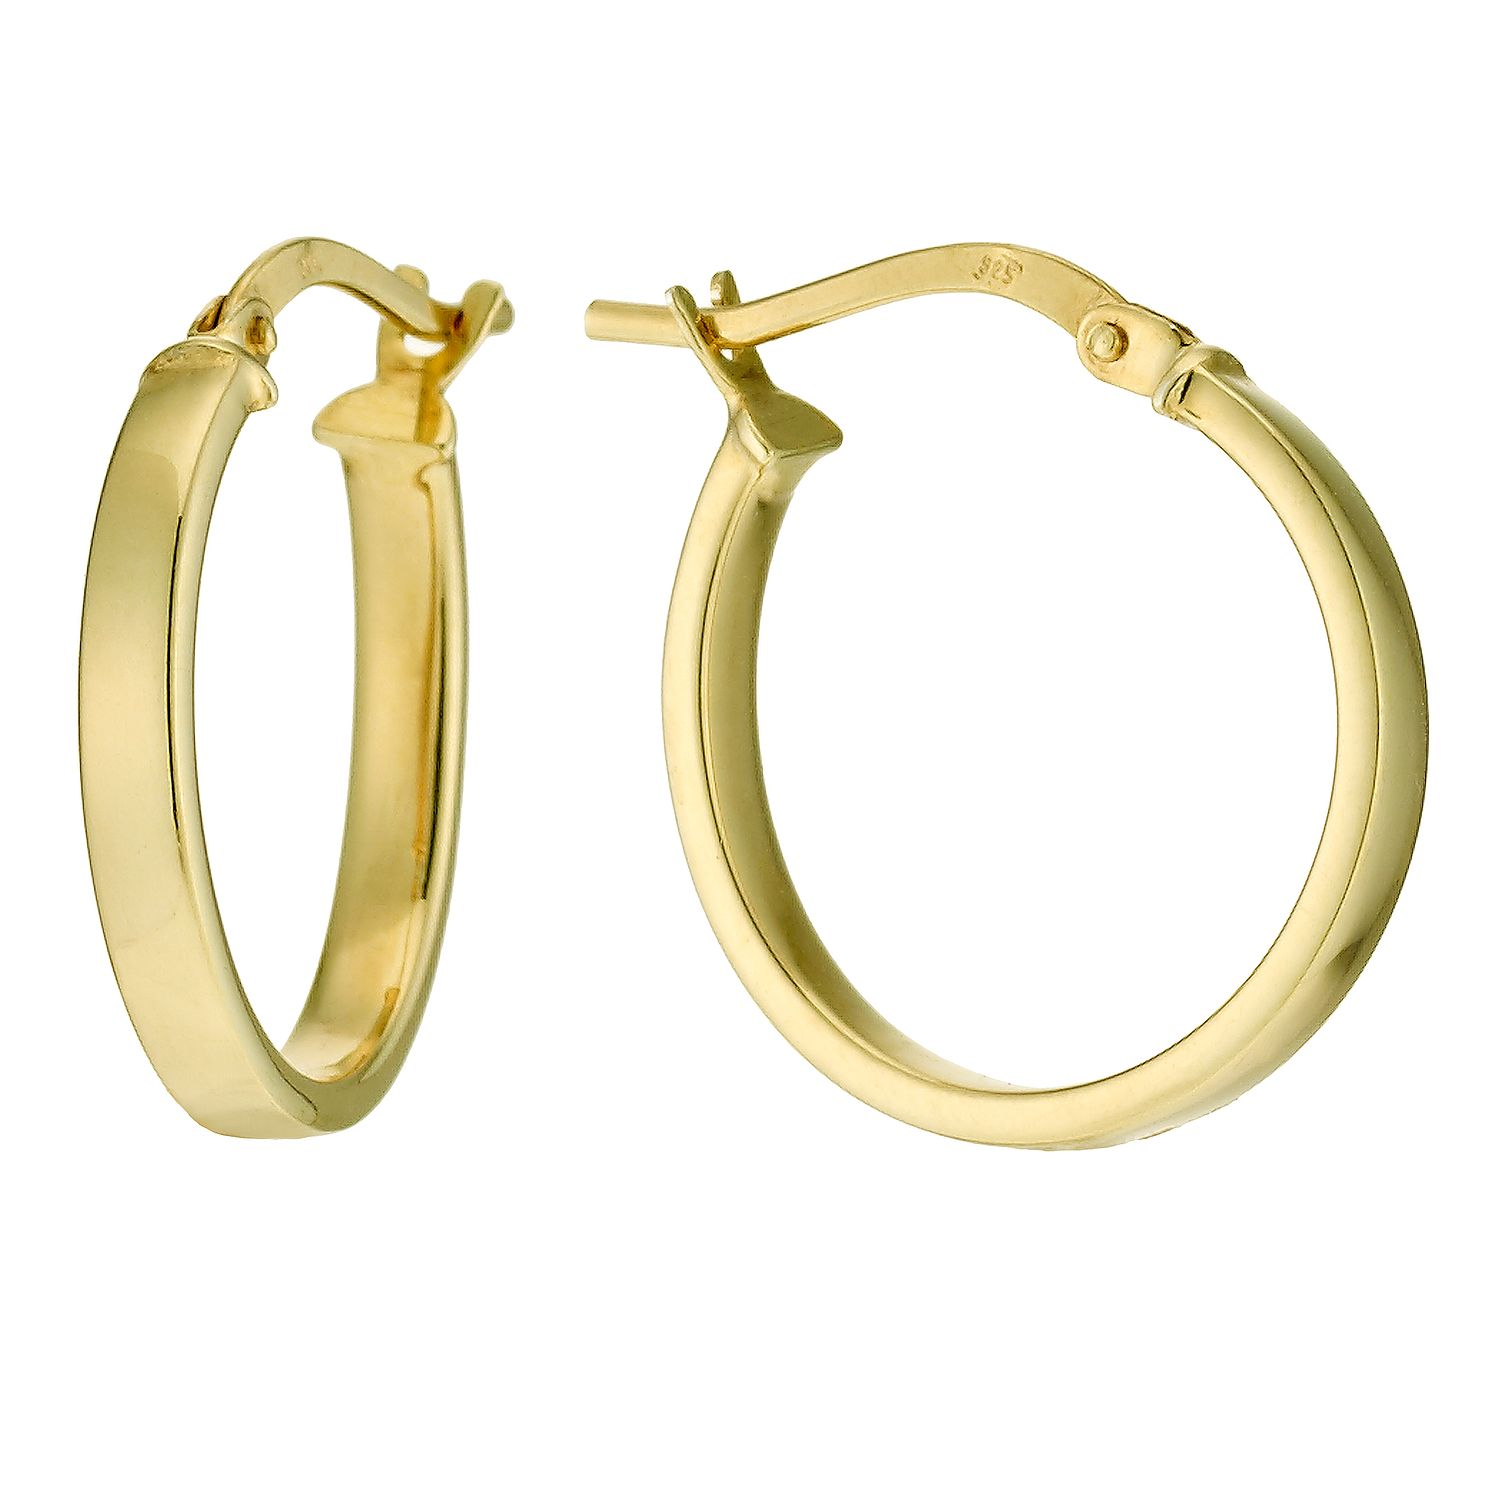 Together Silver & 9ct Bonded Gold 15mm Hoop Earrings - Product number 9689419